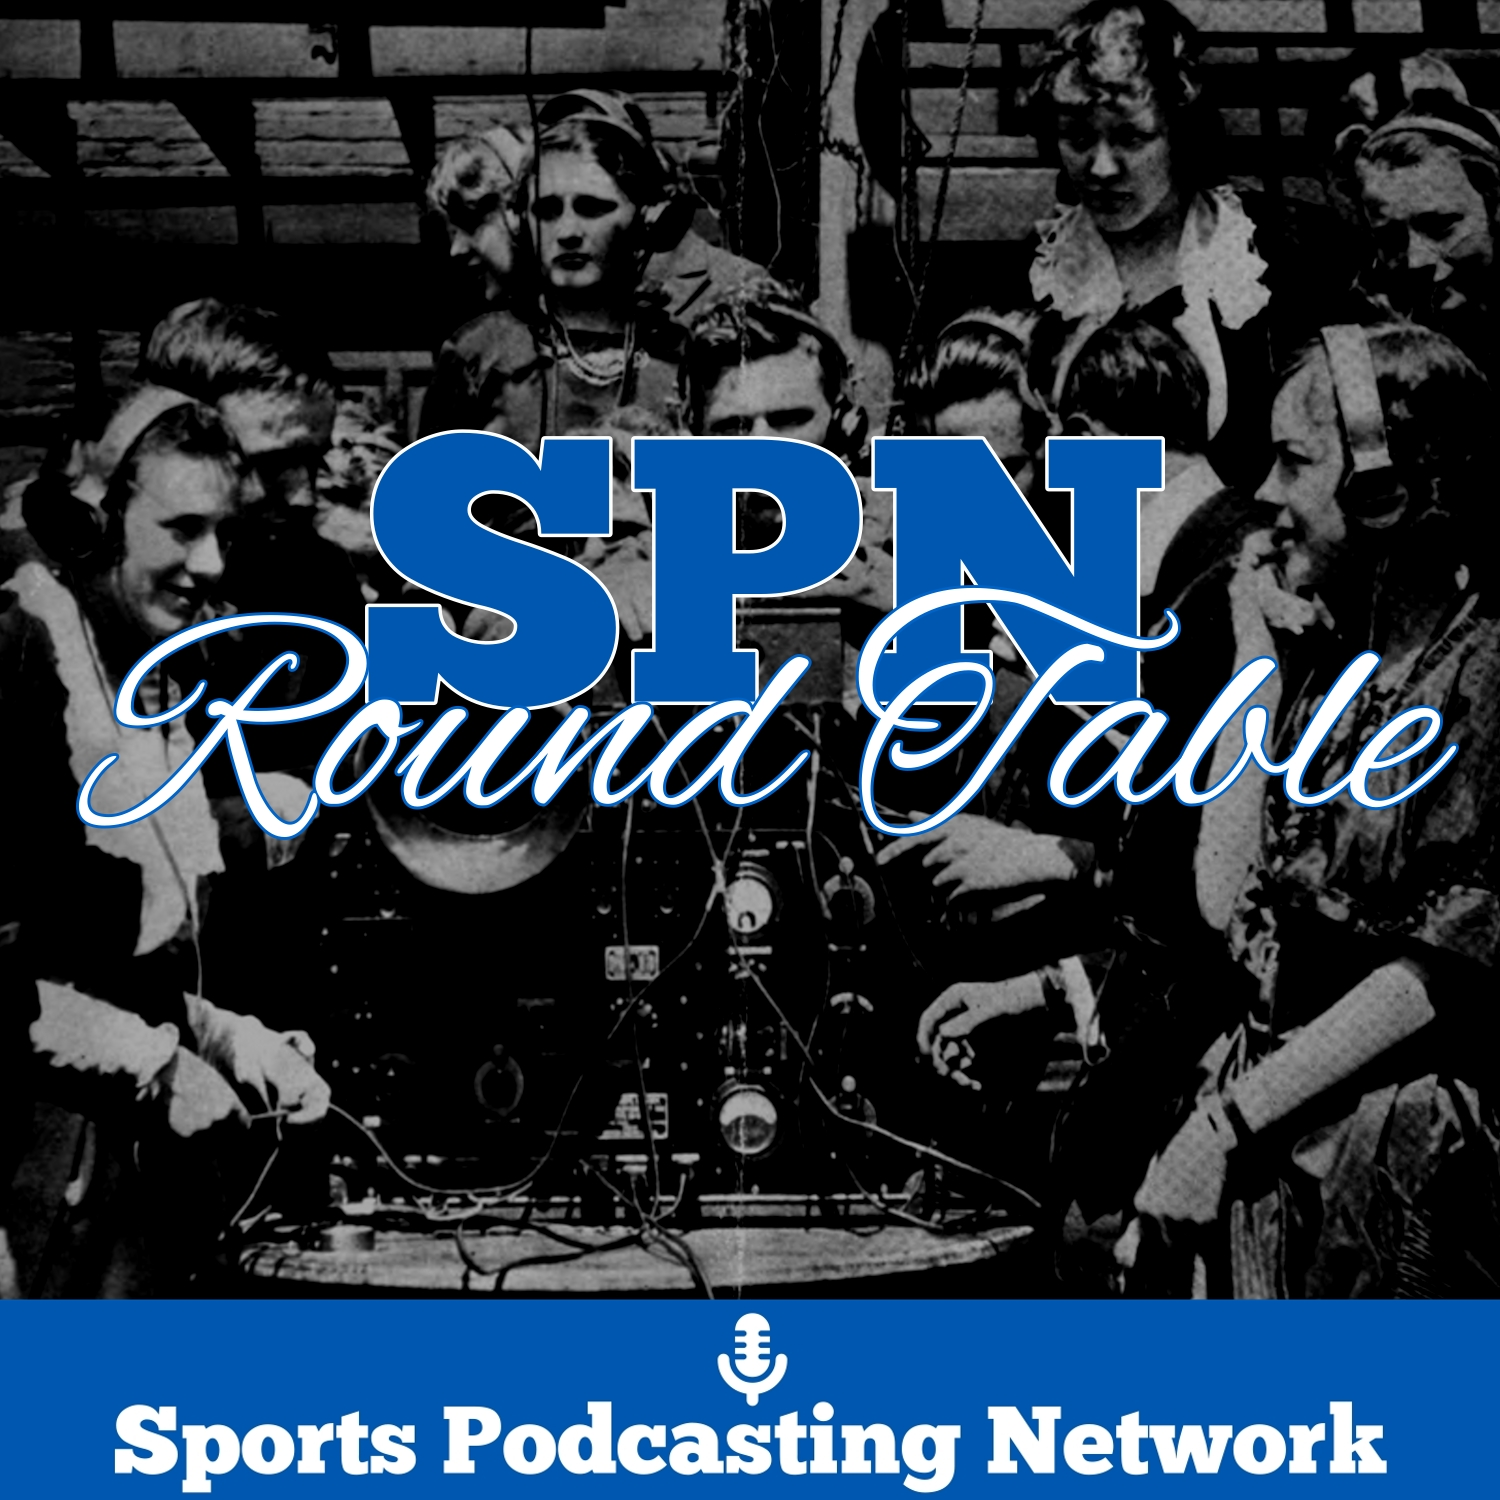 SPN Round Table – Sports Podcasting Network